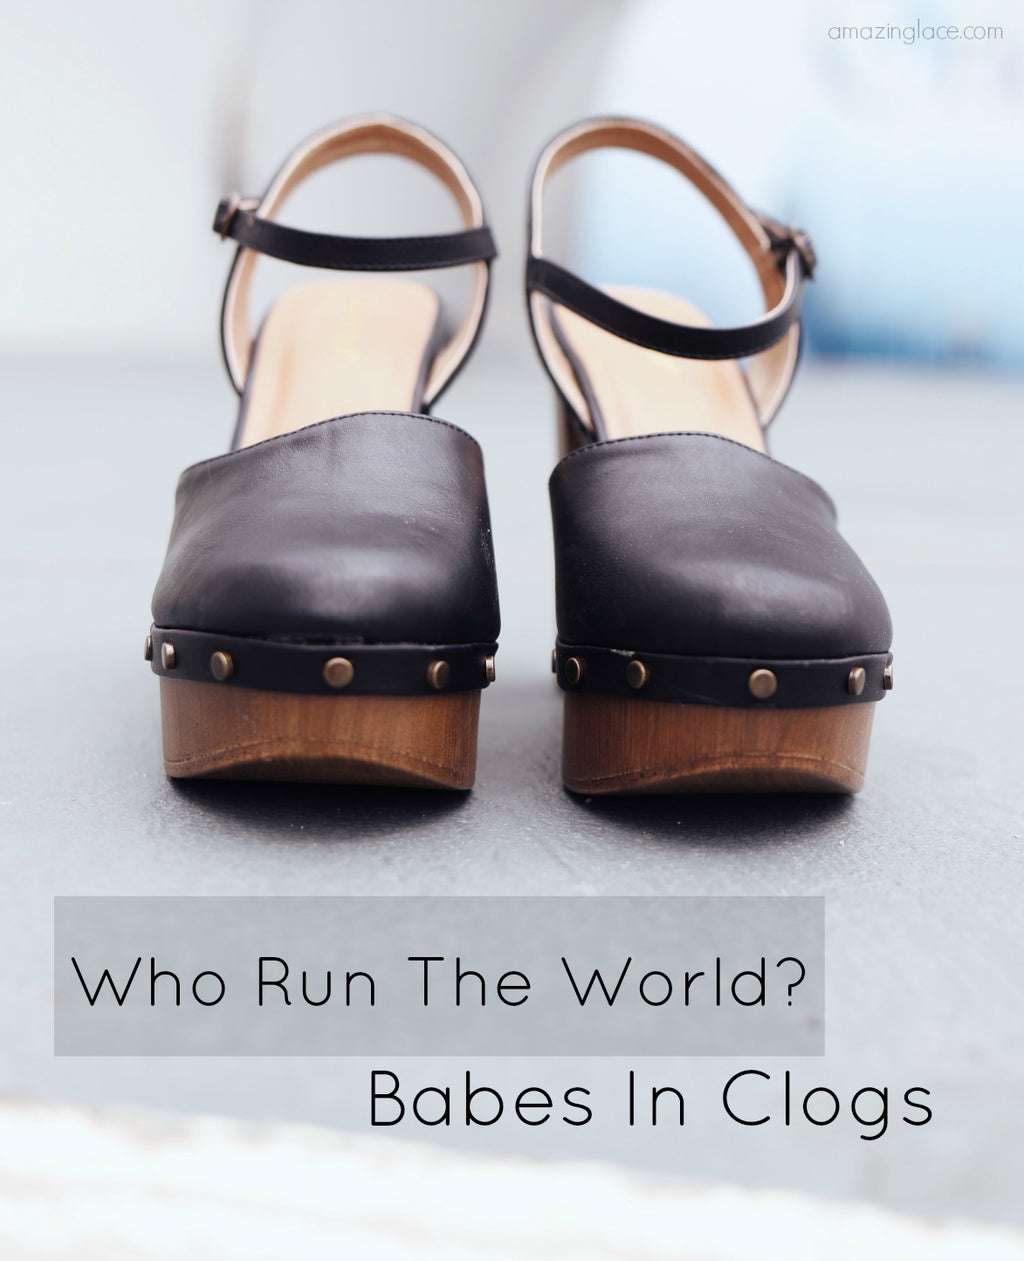 Who Run The World? Babes In Clogs